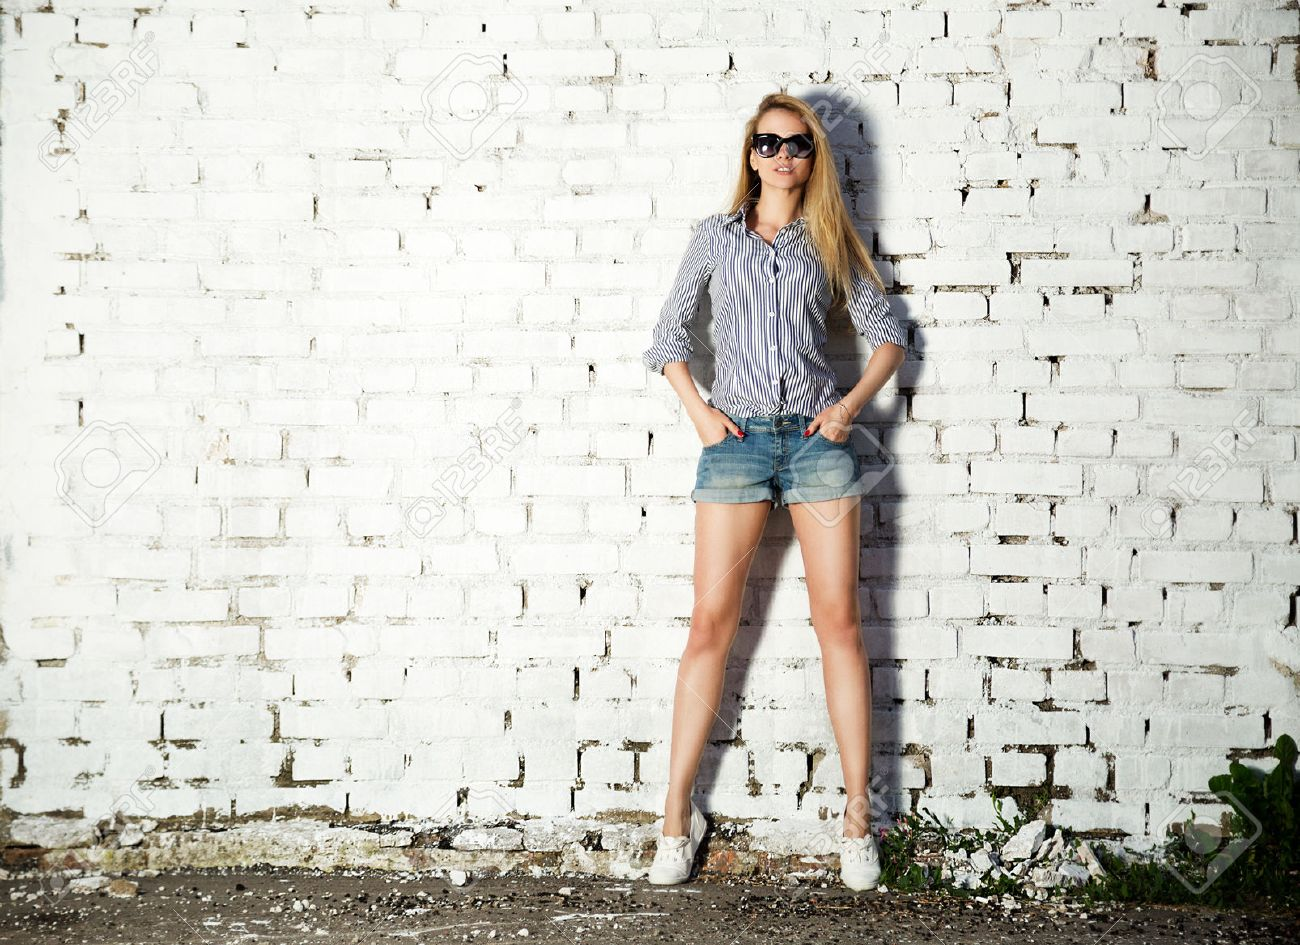 Full Length Portrait of Trendy Hipster Girl with Hands in Pockets on White Brick Wall Background. Trendy Urban Fashion Concept. Copy Space. - 38110443